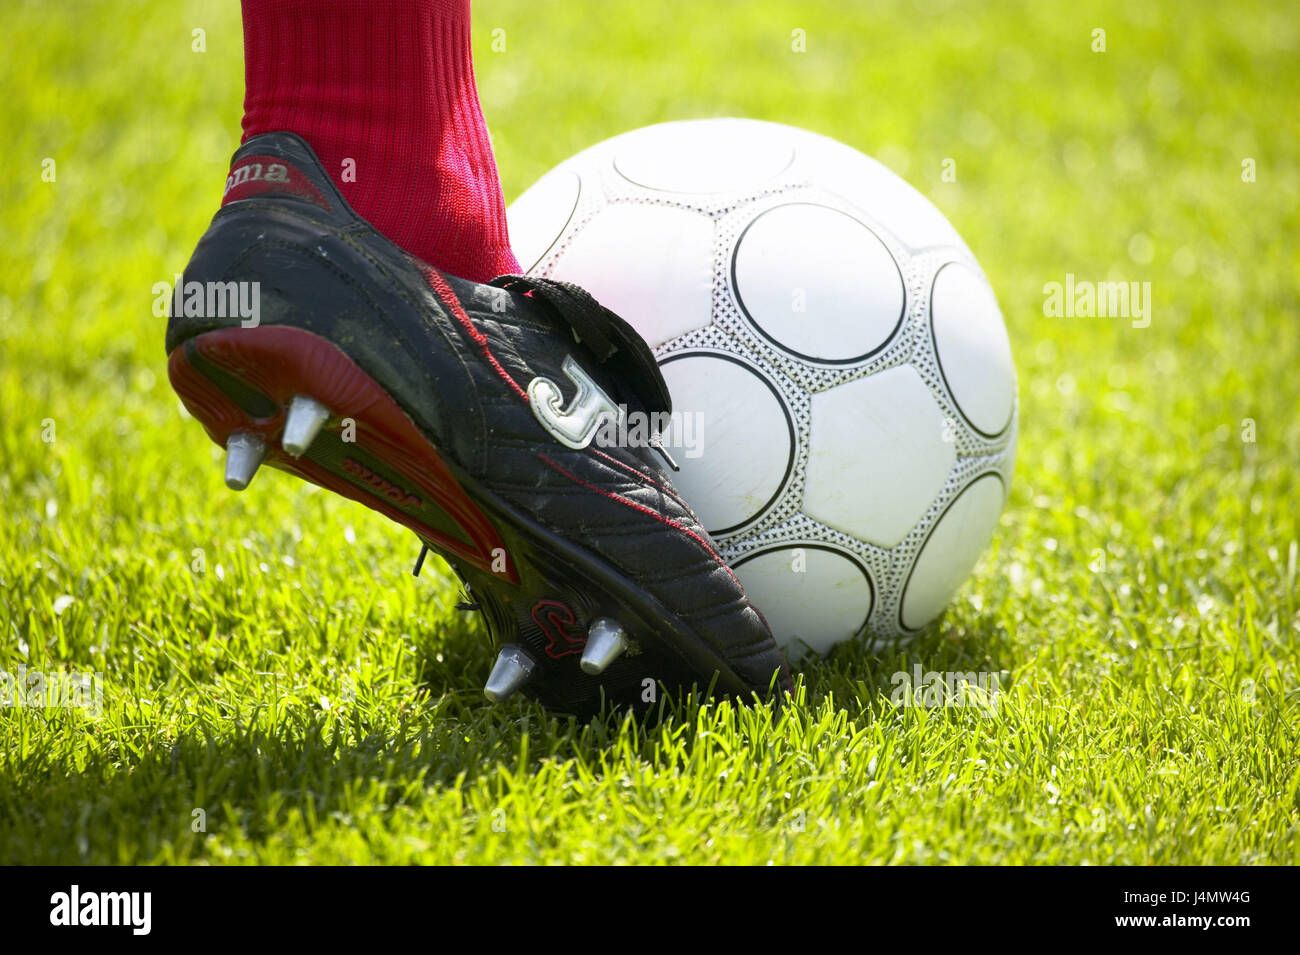 Turfs, football, player, detail, foot football match, football player, football boot, shoe, ball, sports device, - Stock Image